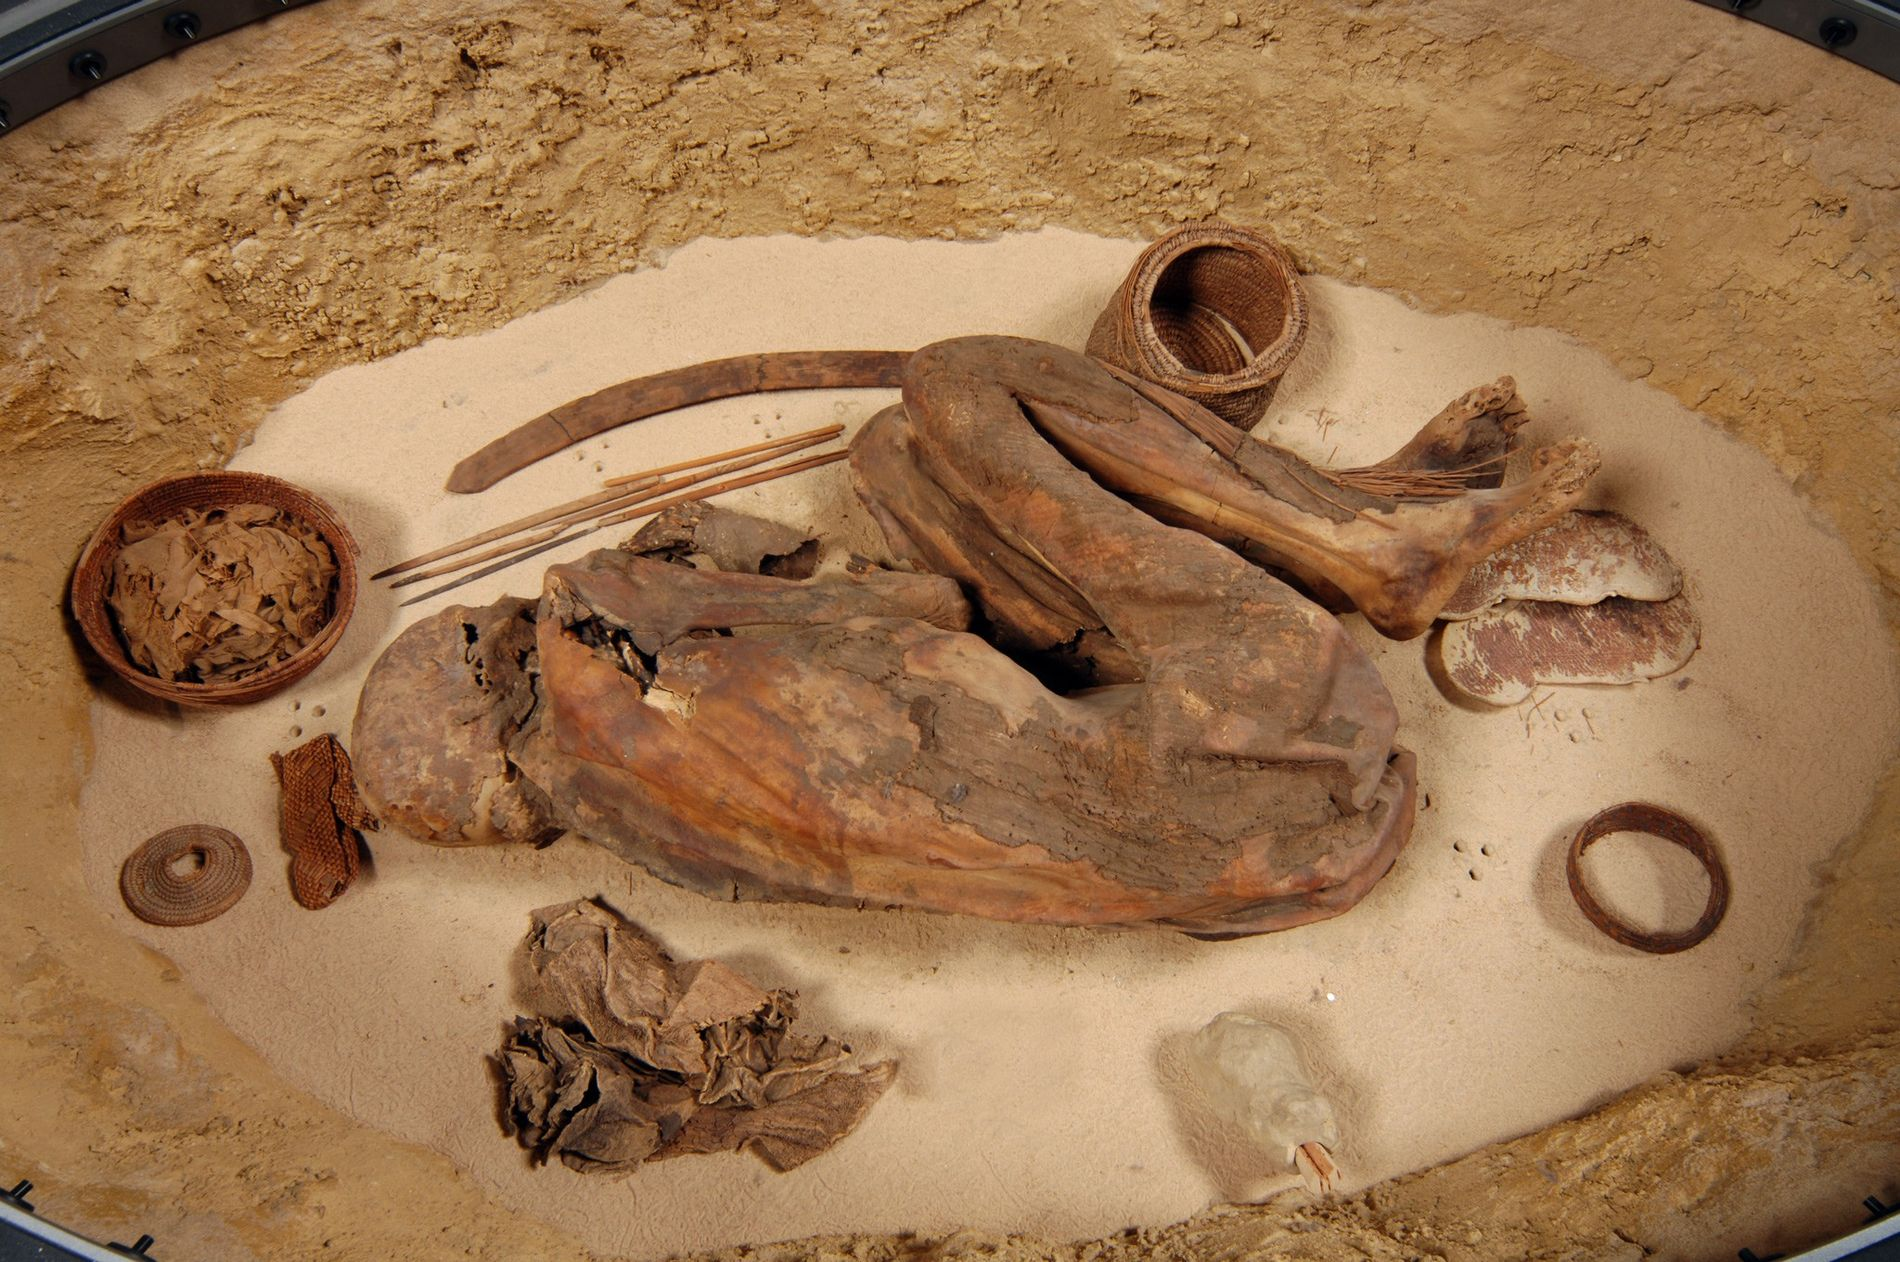 Researchers long thought the prehistoric mummies of Egypt were created by accident. But mounting evidence suggests ...